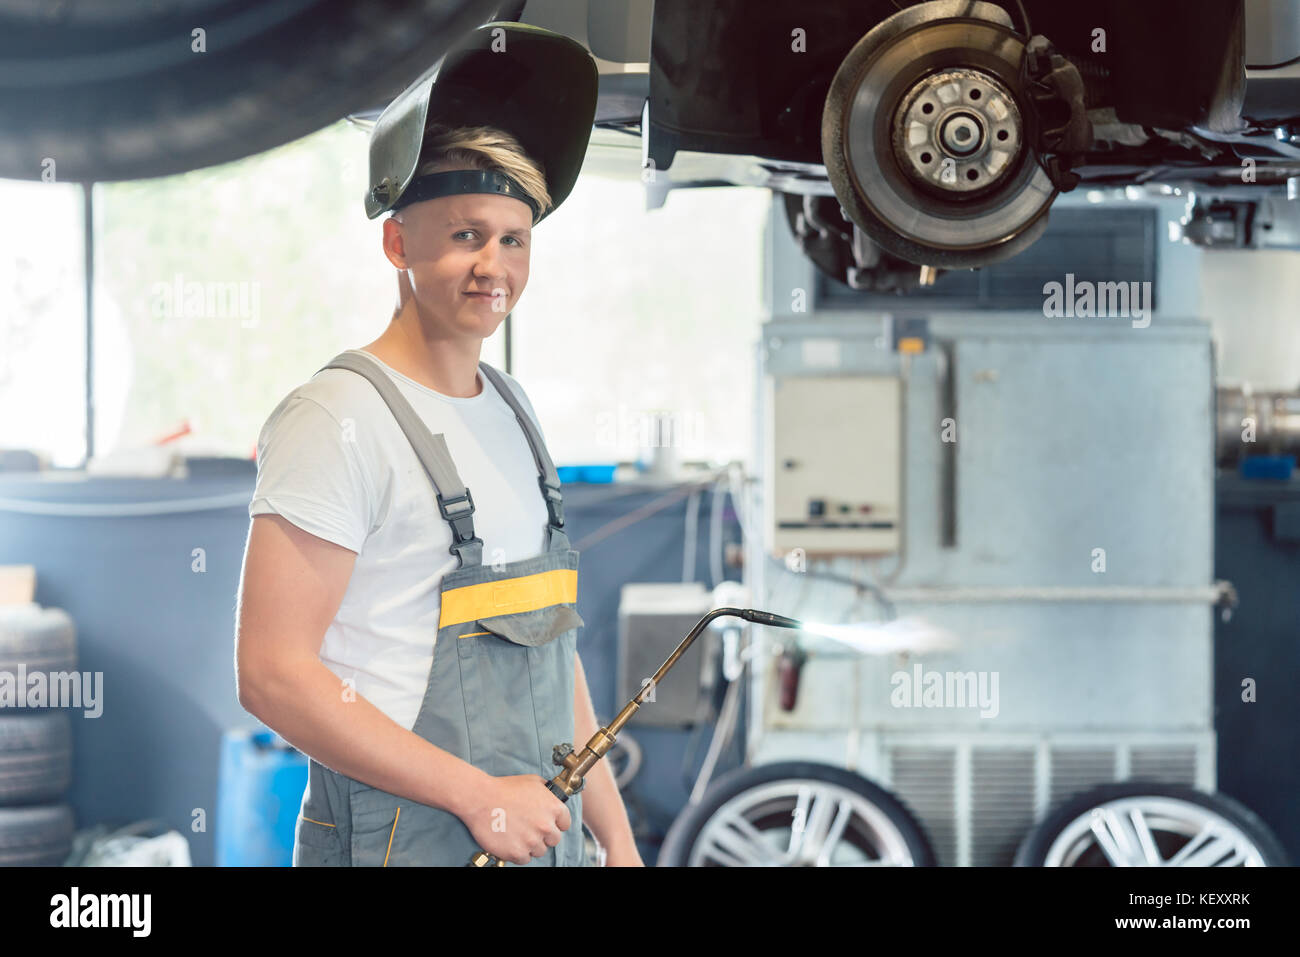 Portrait of a handsome auto mechanic looking at camera with conf - Stock Image